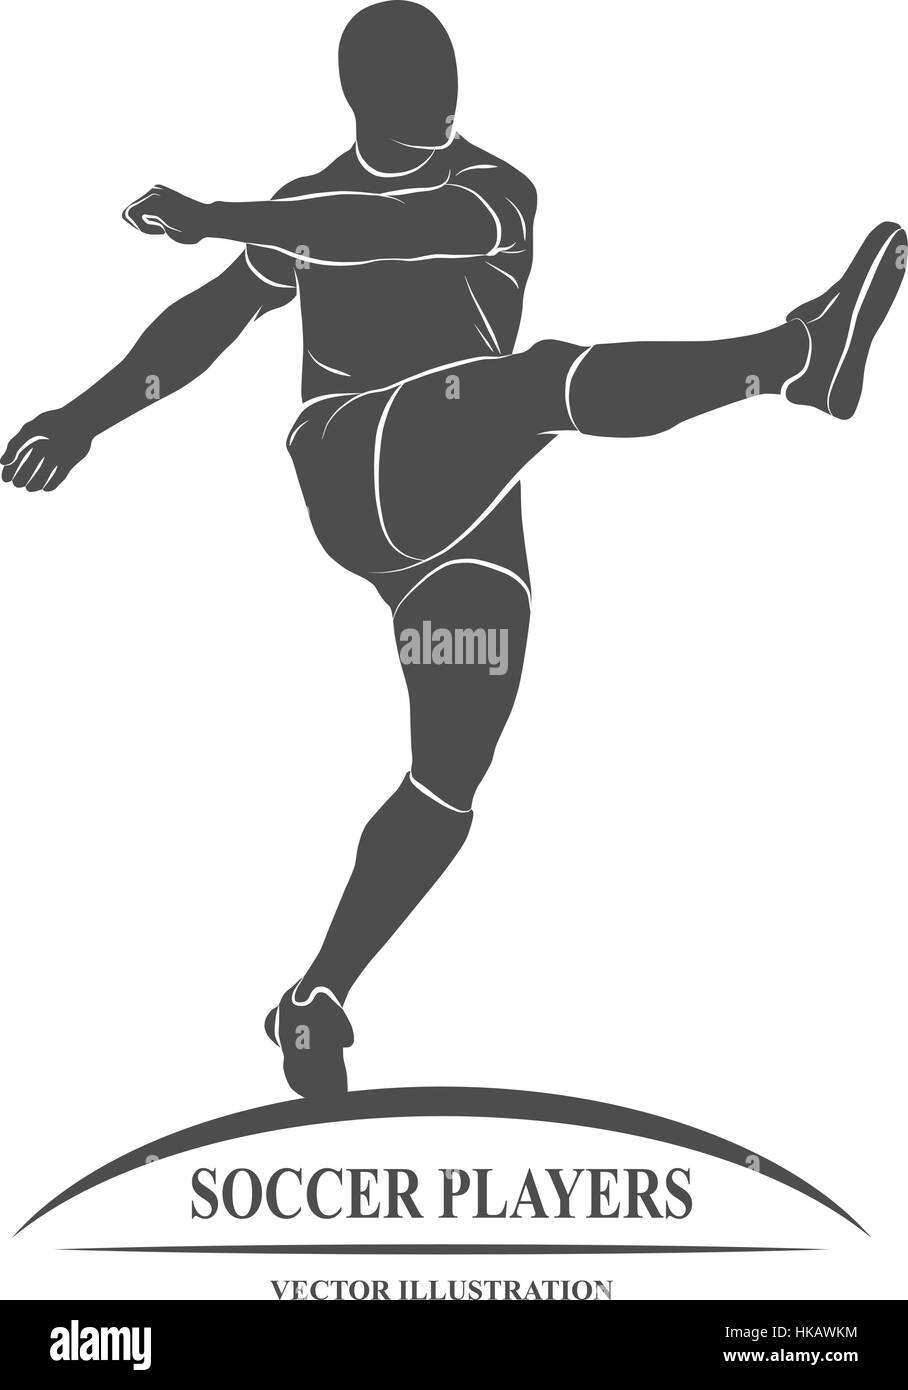 Icon soccer player on a white background. Vector illustration. - Stock Vector